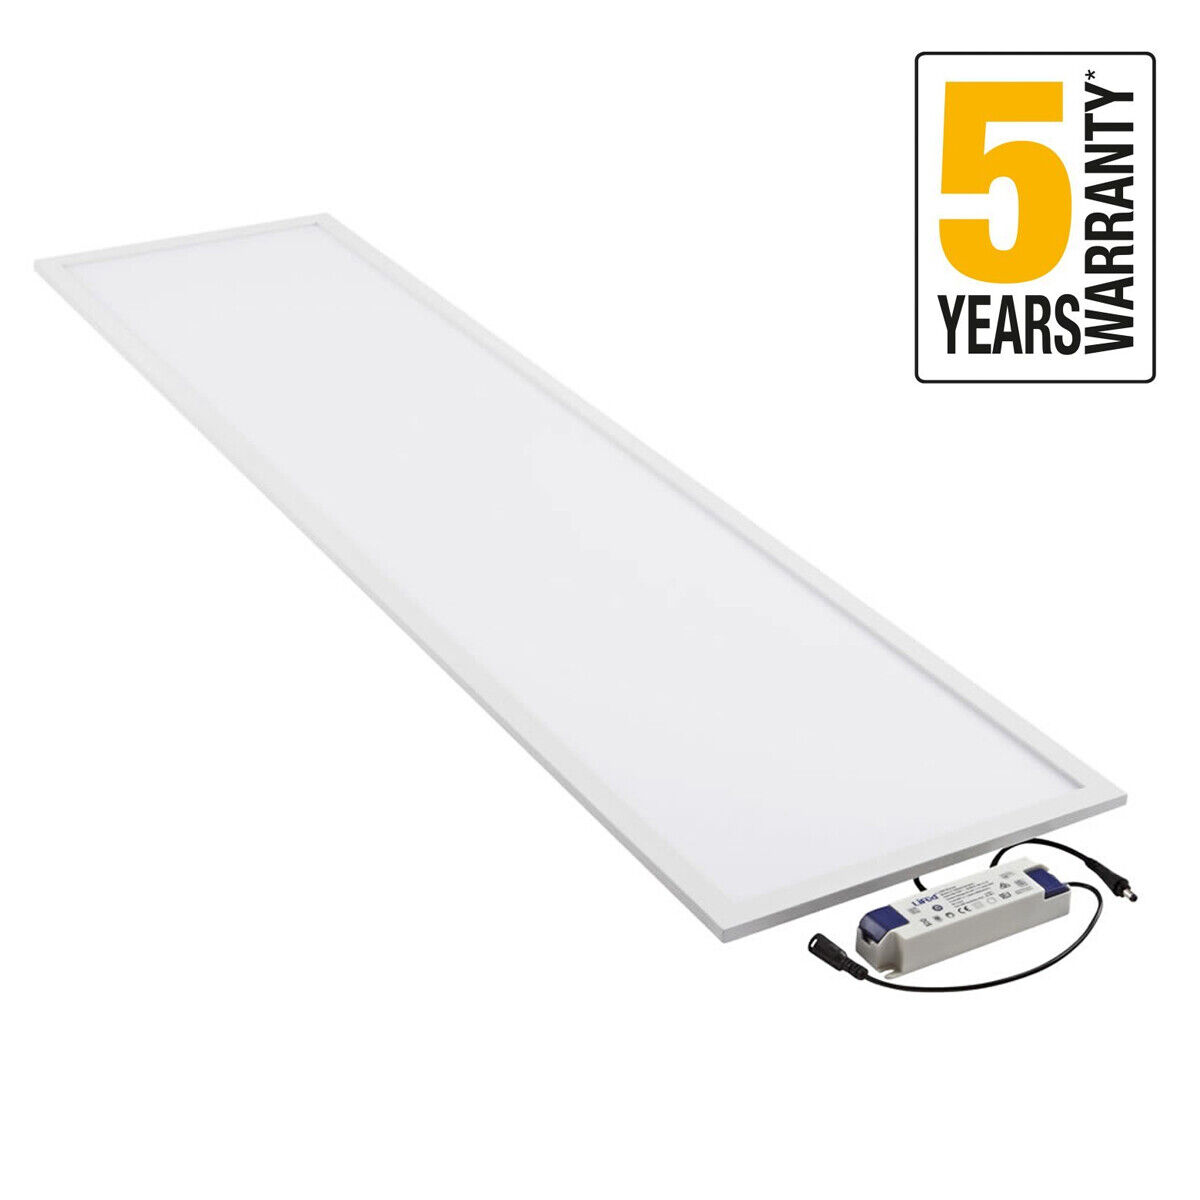 48W LED Panel 1200 x 300 Recessed Ceiling Flat Down Light ✔Warm✔Cool✔Daylight